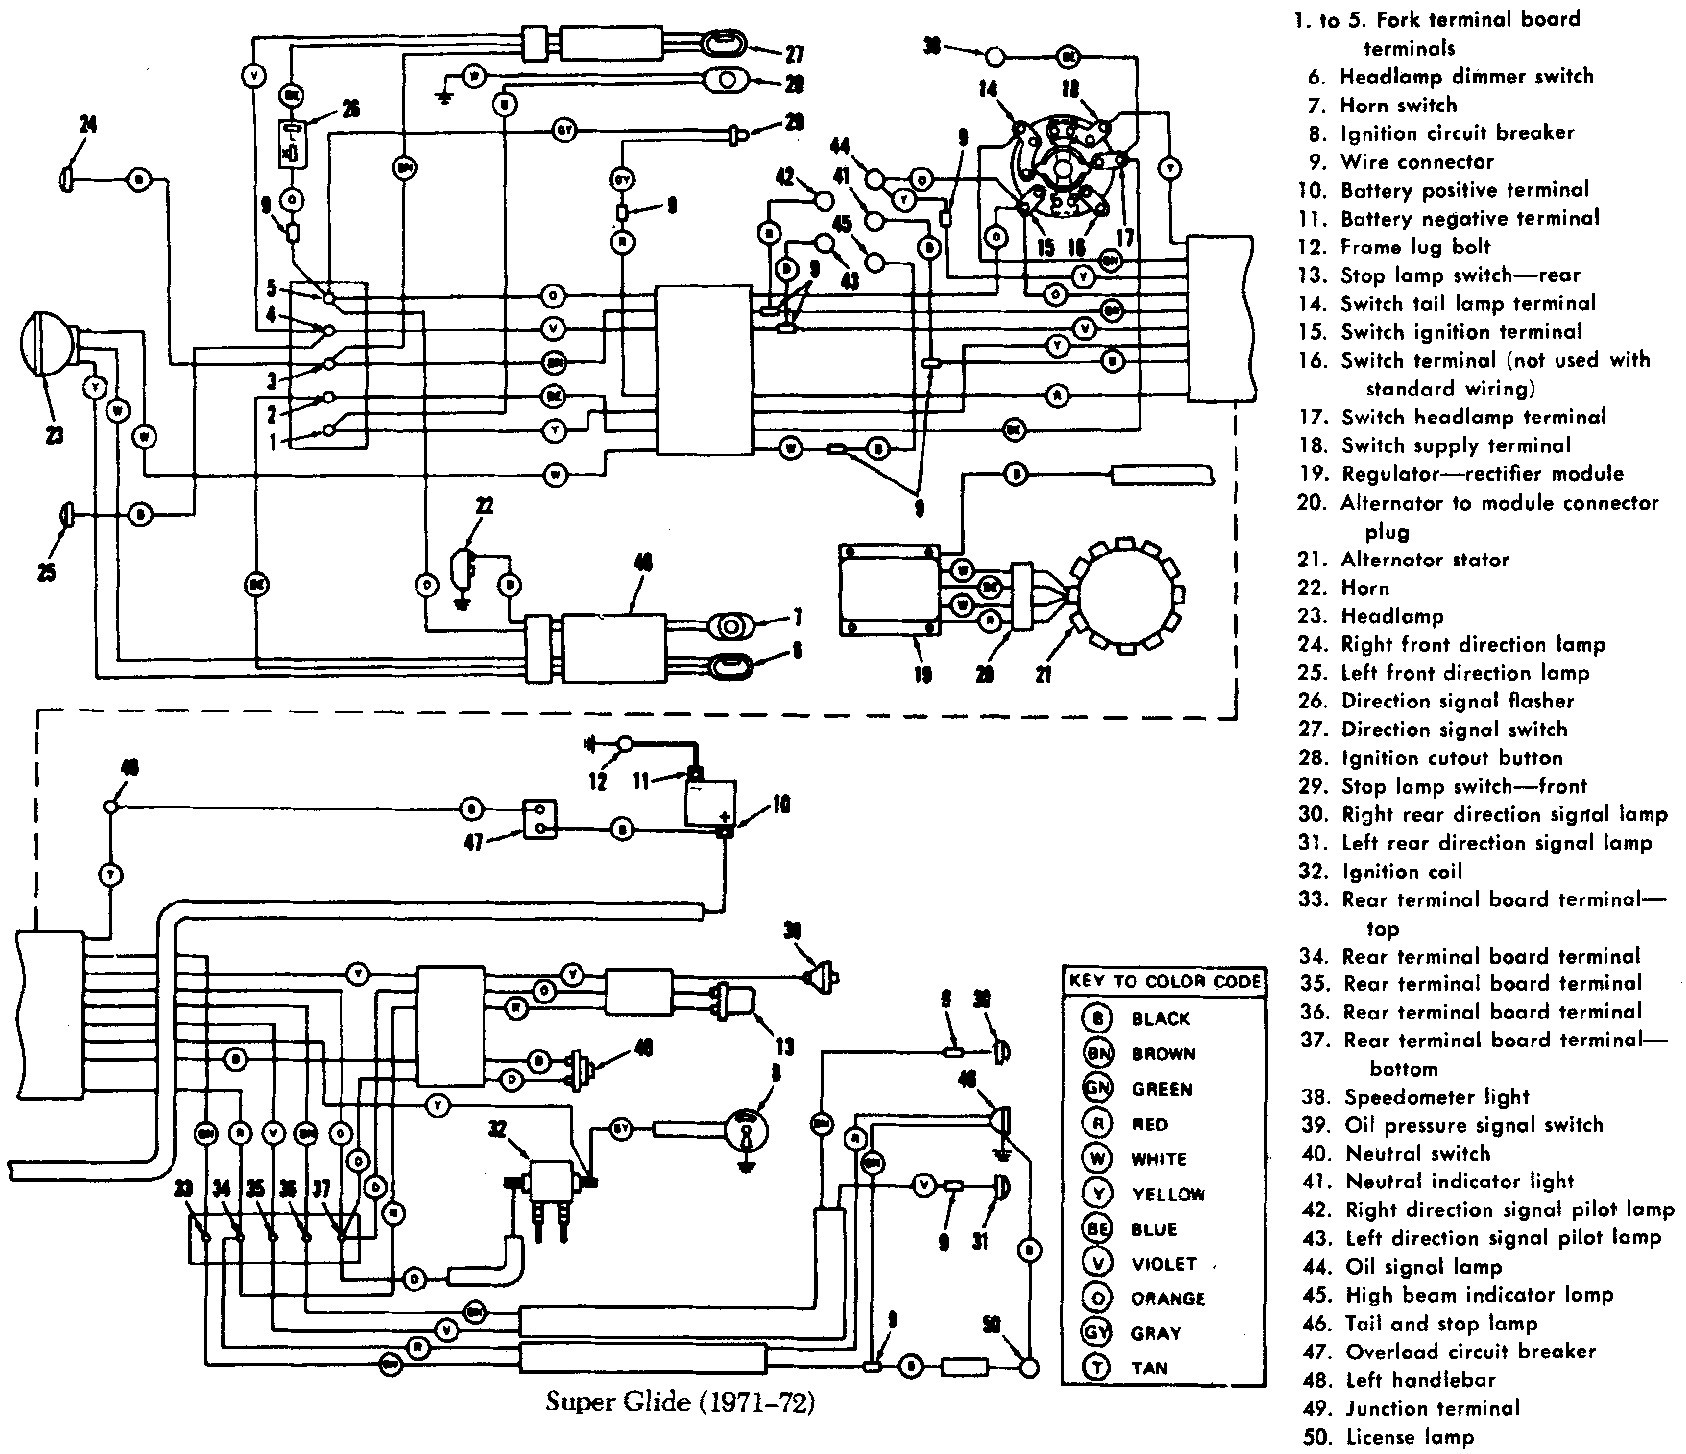 1981 Harley Wiring Diagram - Everything Wiring Diagram on 1981 dodge wiring diagram, 1981 toyota wiring diagram, 1981 club car wiring diagram,